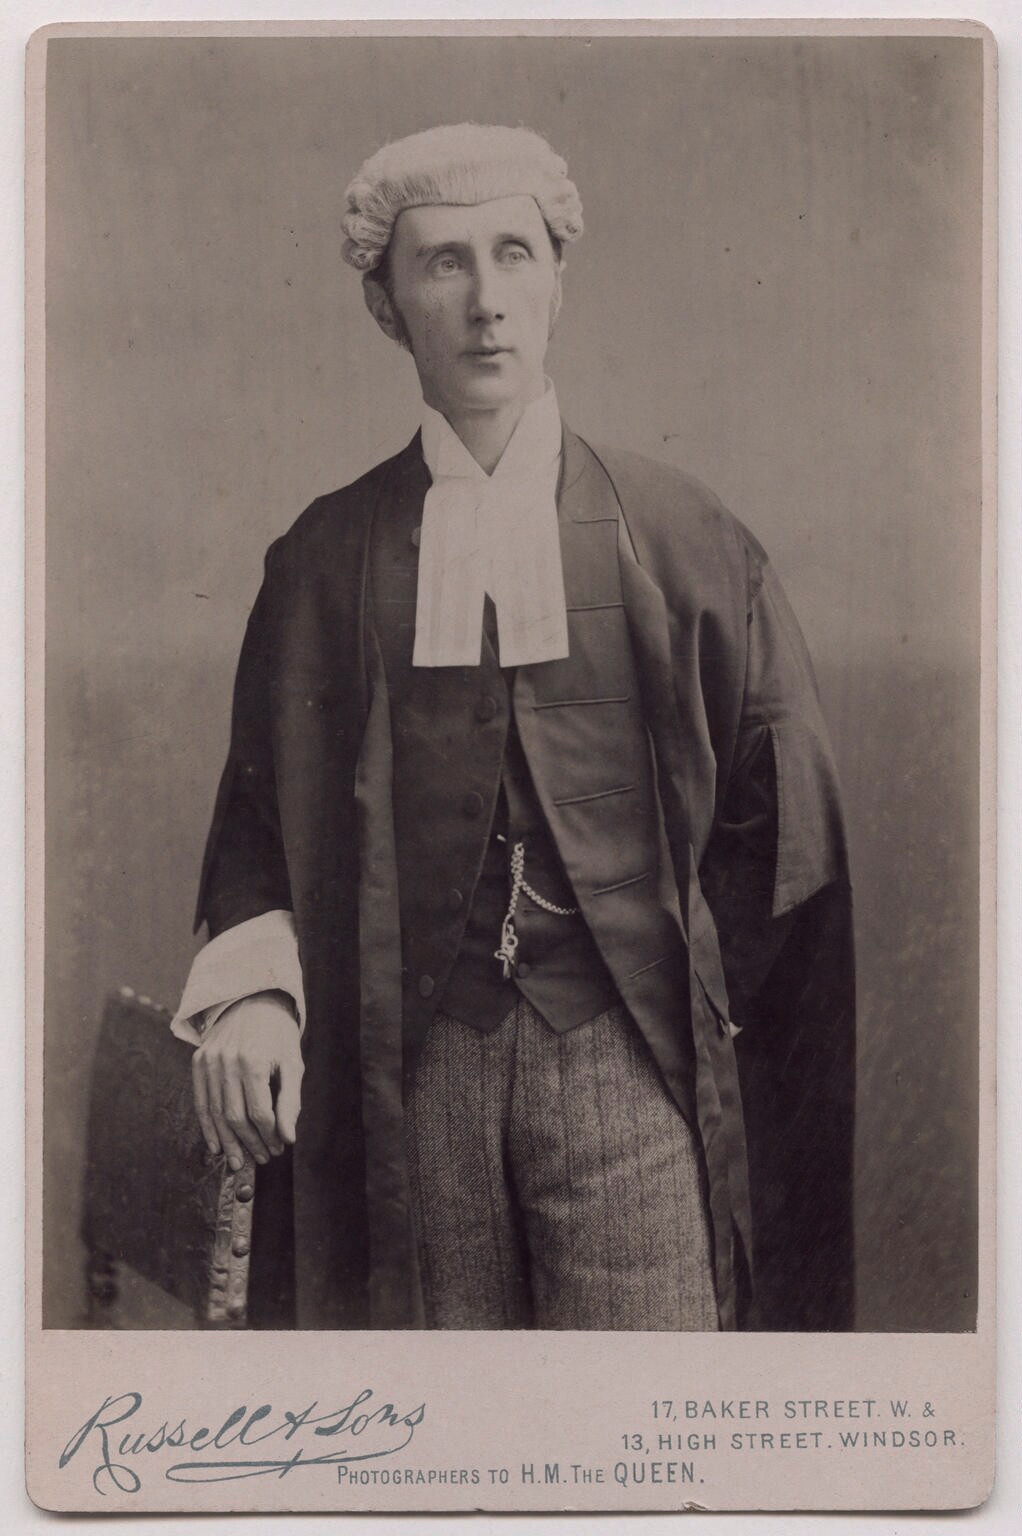 Sir Henry Fielding Dickens, Common Serjeant, pictured in the 1890s